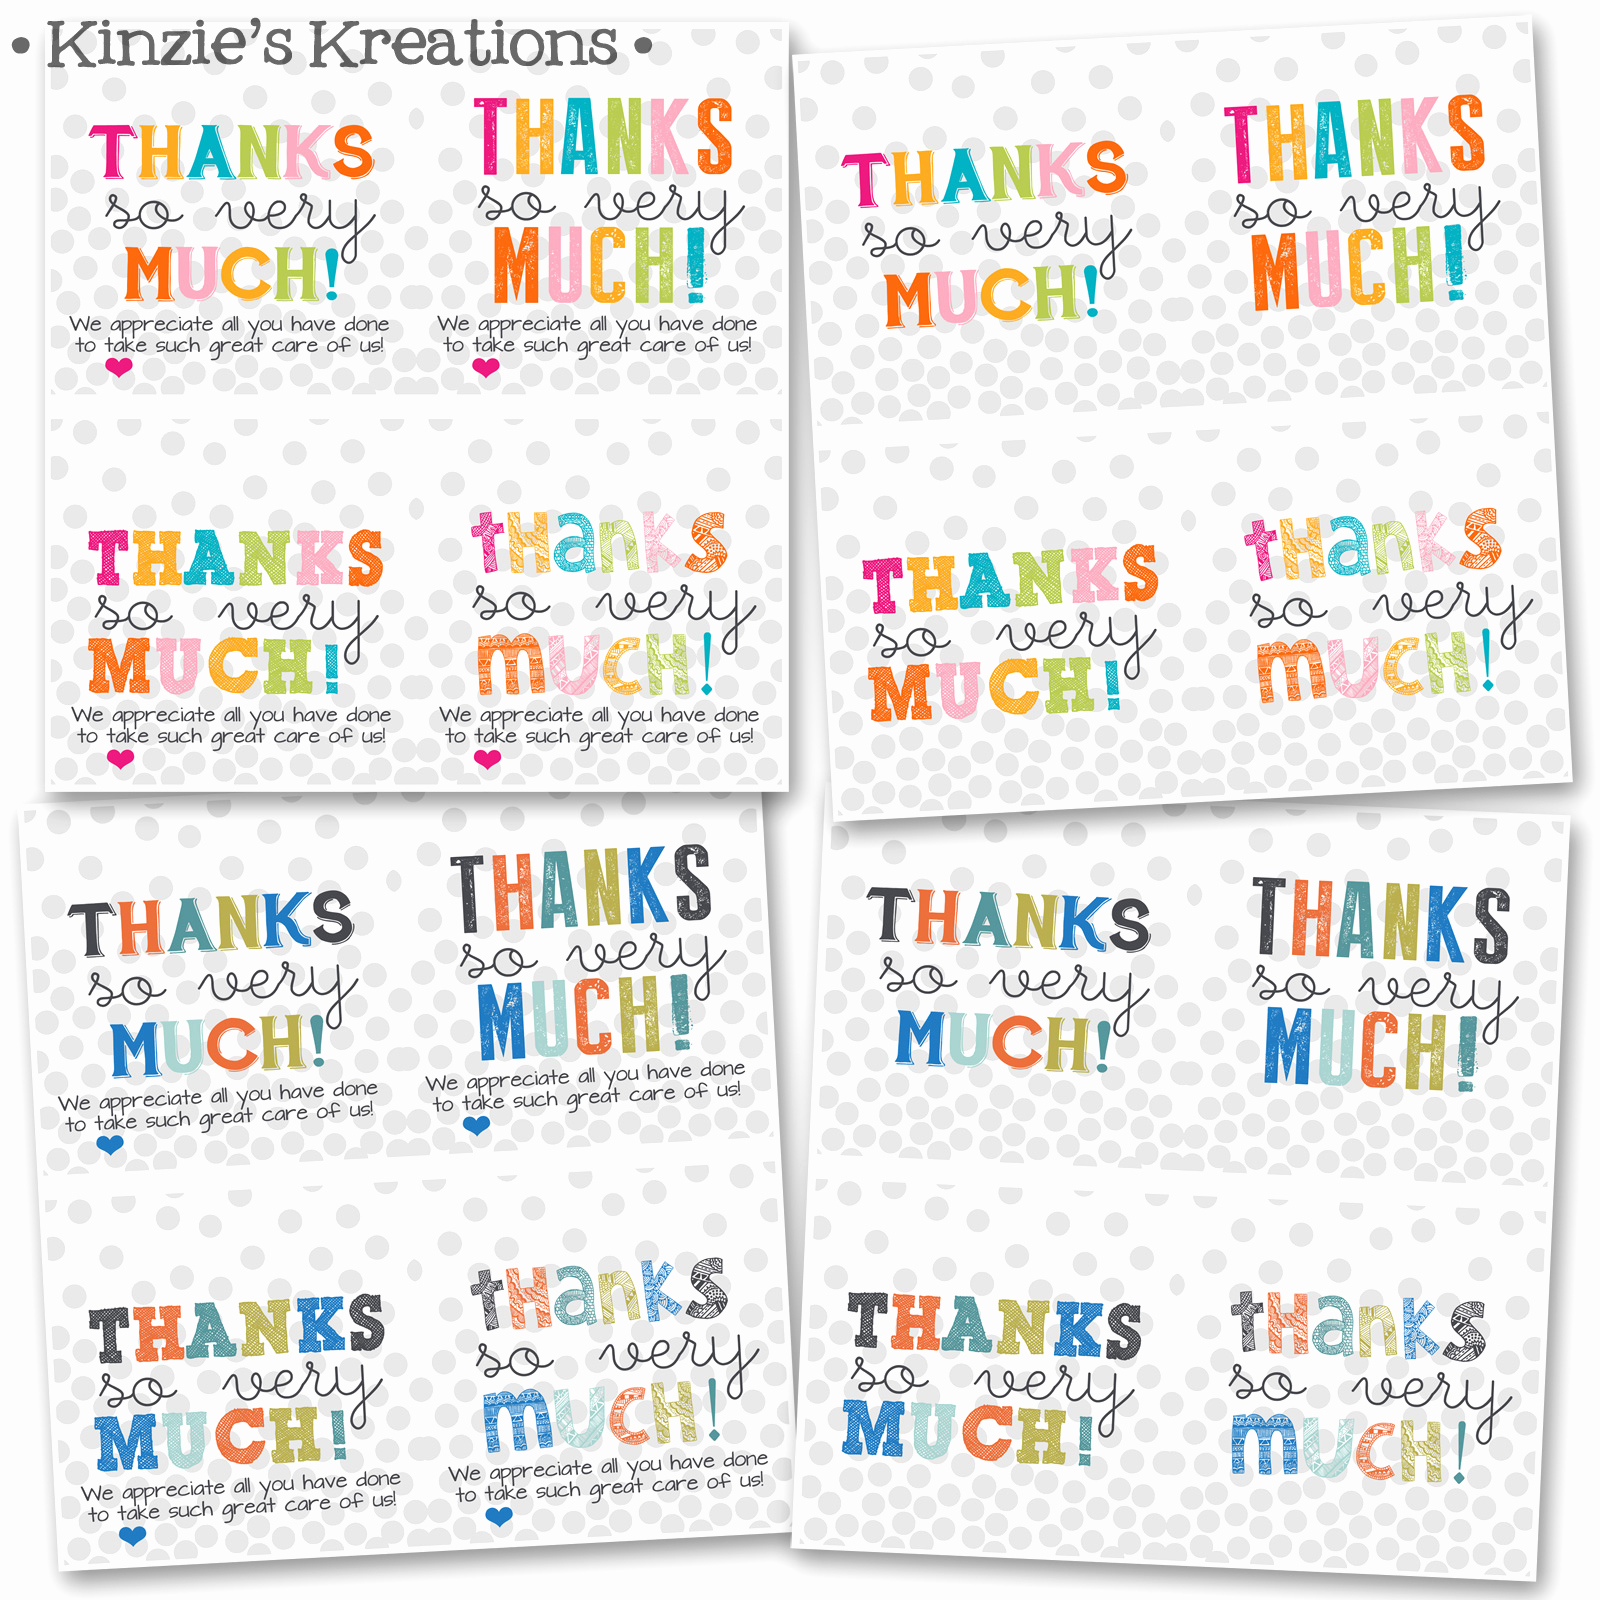 Free Printable Thank You Tags Awesome Kinzie S Kreations Hospital Thank You Cards